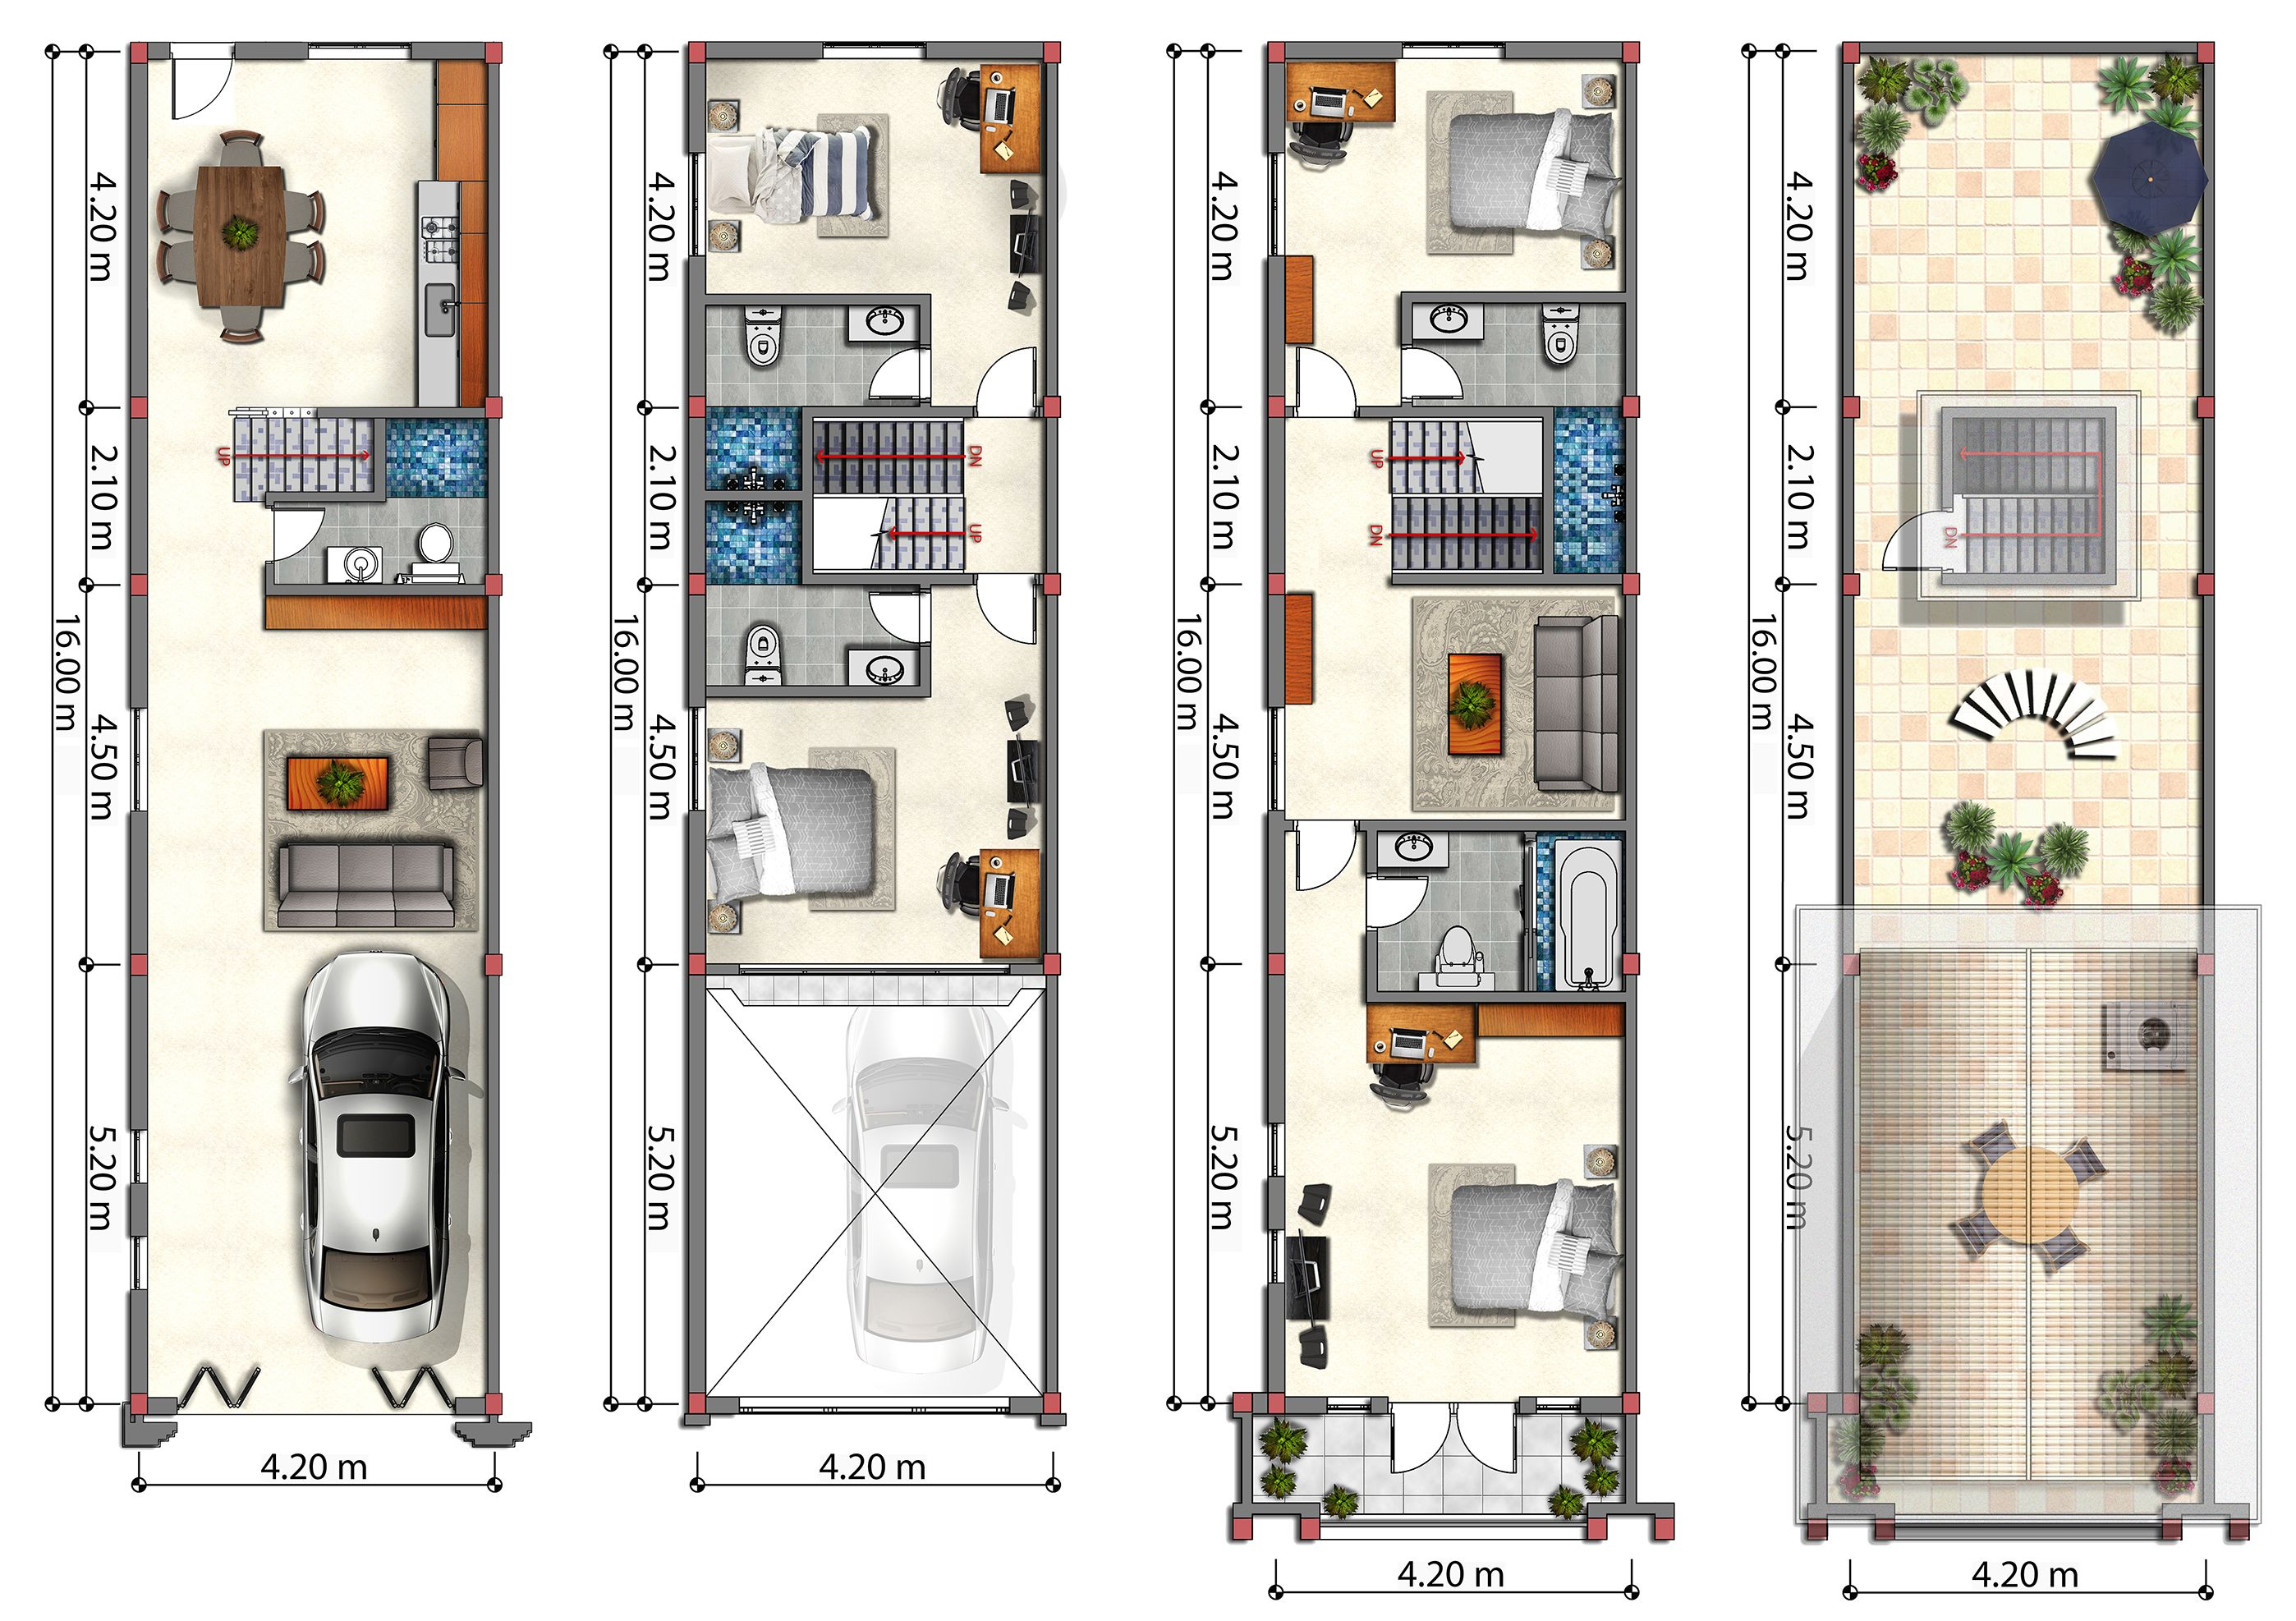 Floor Plans Flat House Phnom Penh Cambodia Gc Flat House Design Philippines House Design House Plans